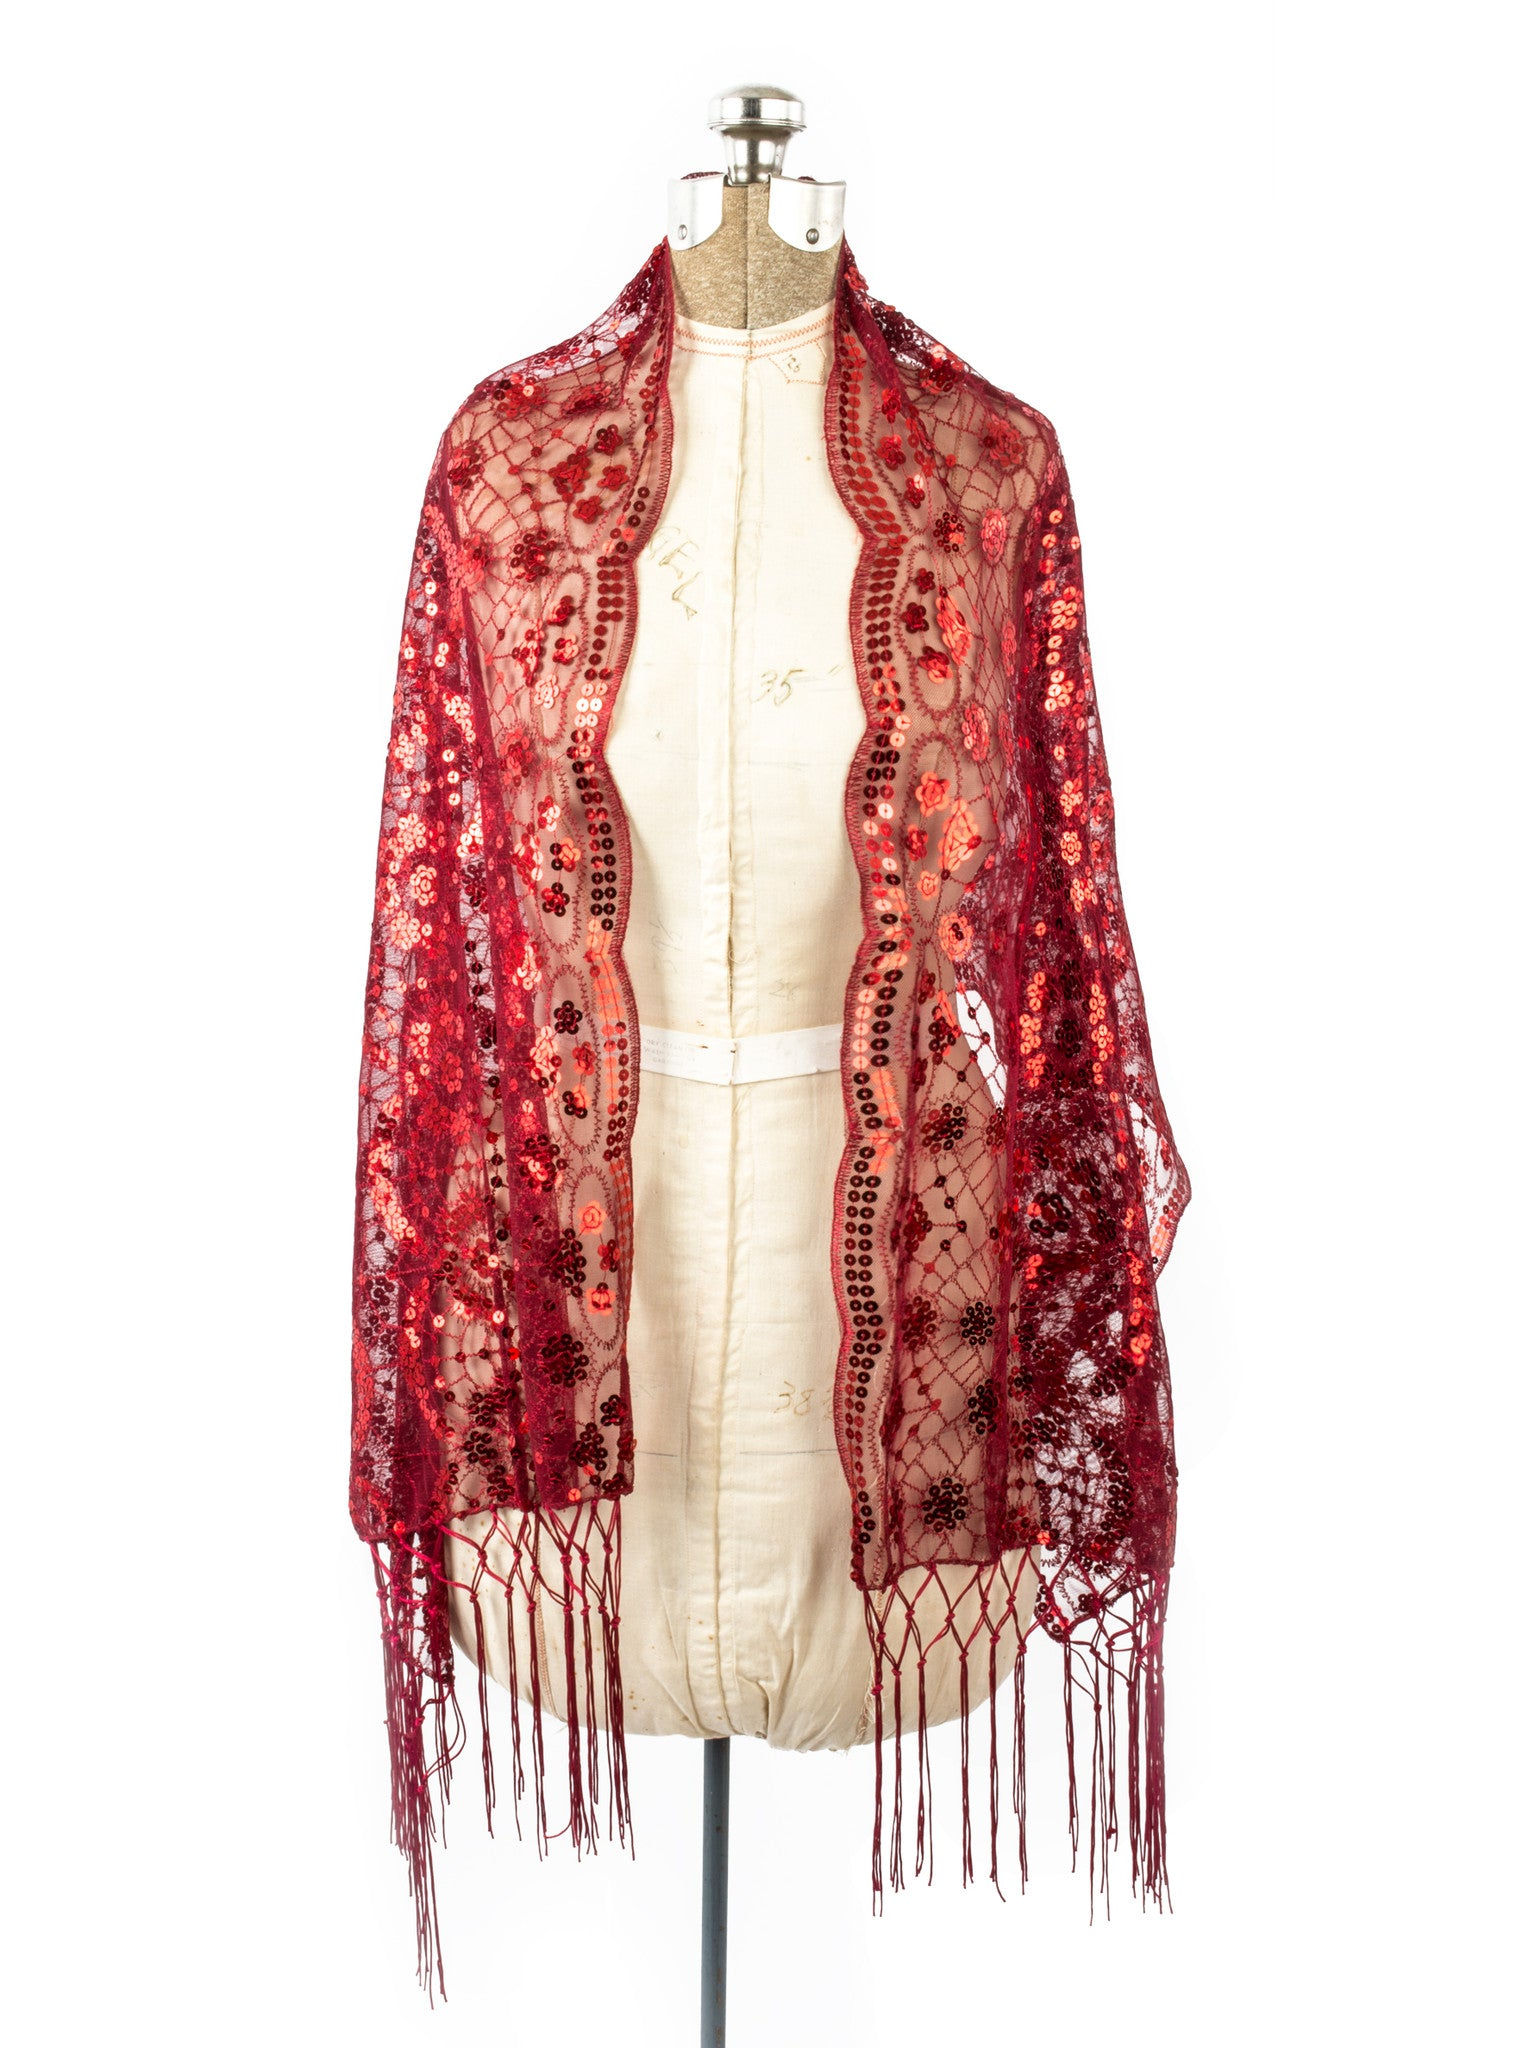 Scarves - Vera, Vintage Inspired Sequin Shawl, Evening Wrap, Embroidered Sequin Fringe Shawl or Scarf -() Bohomonde  - 14